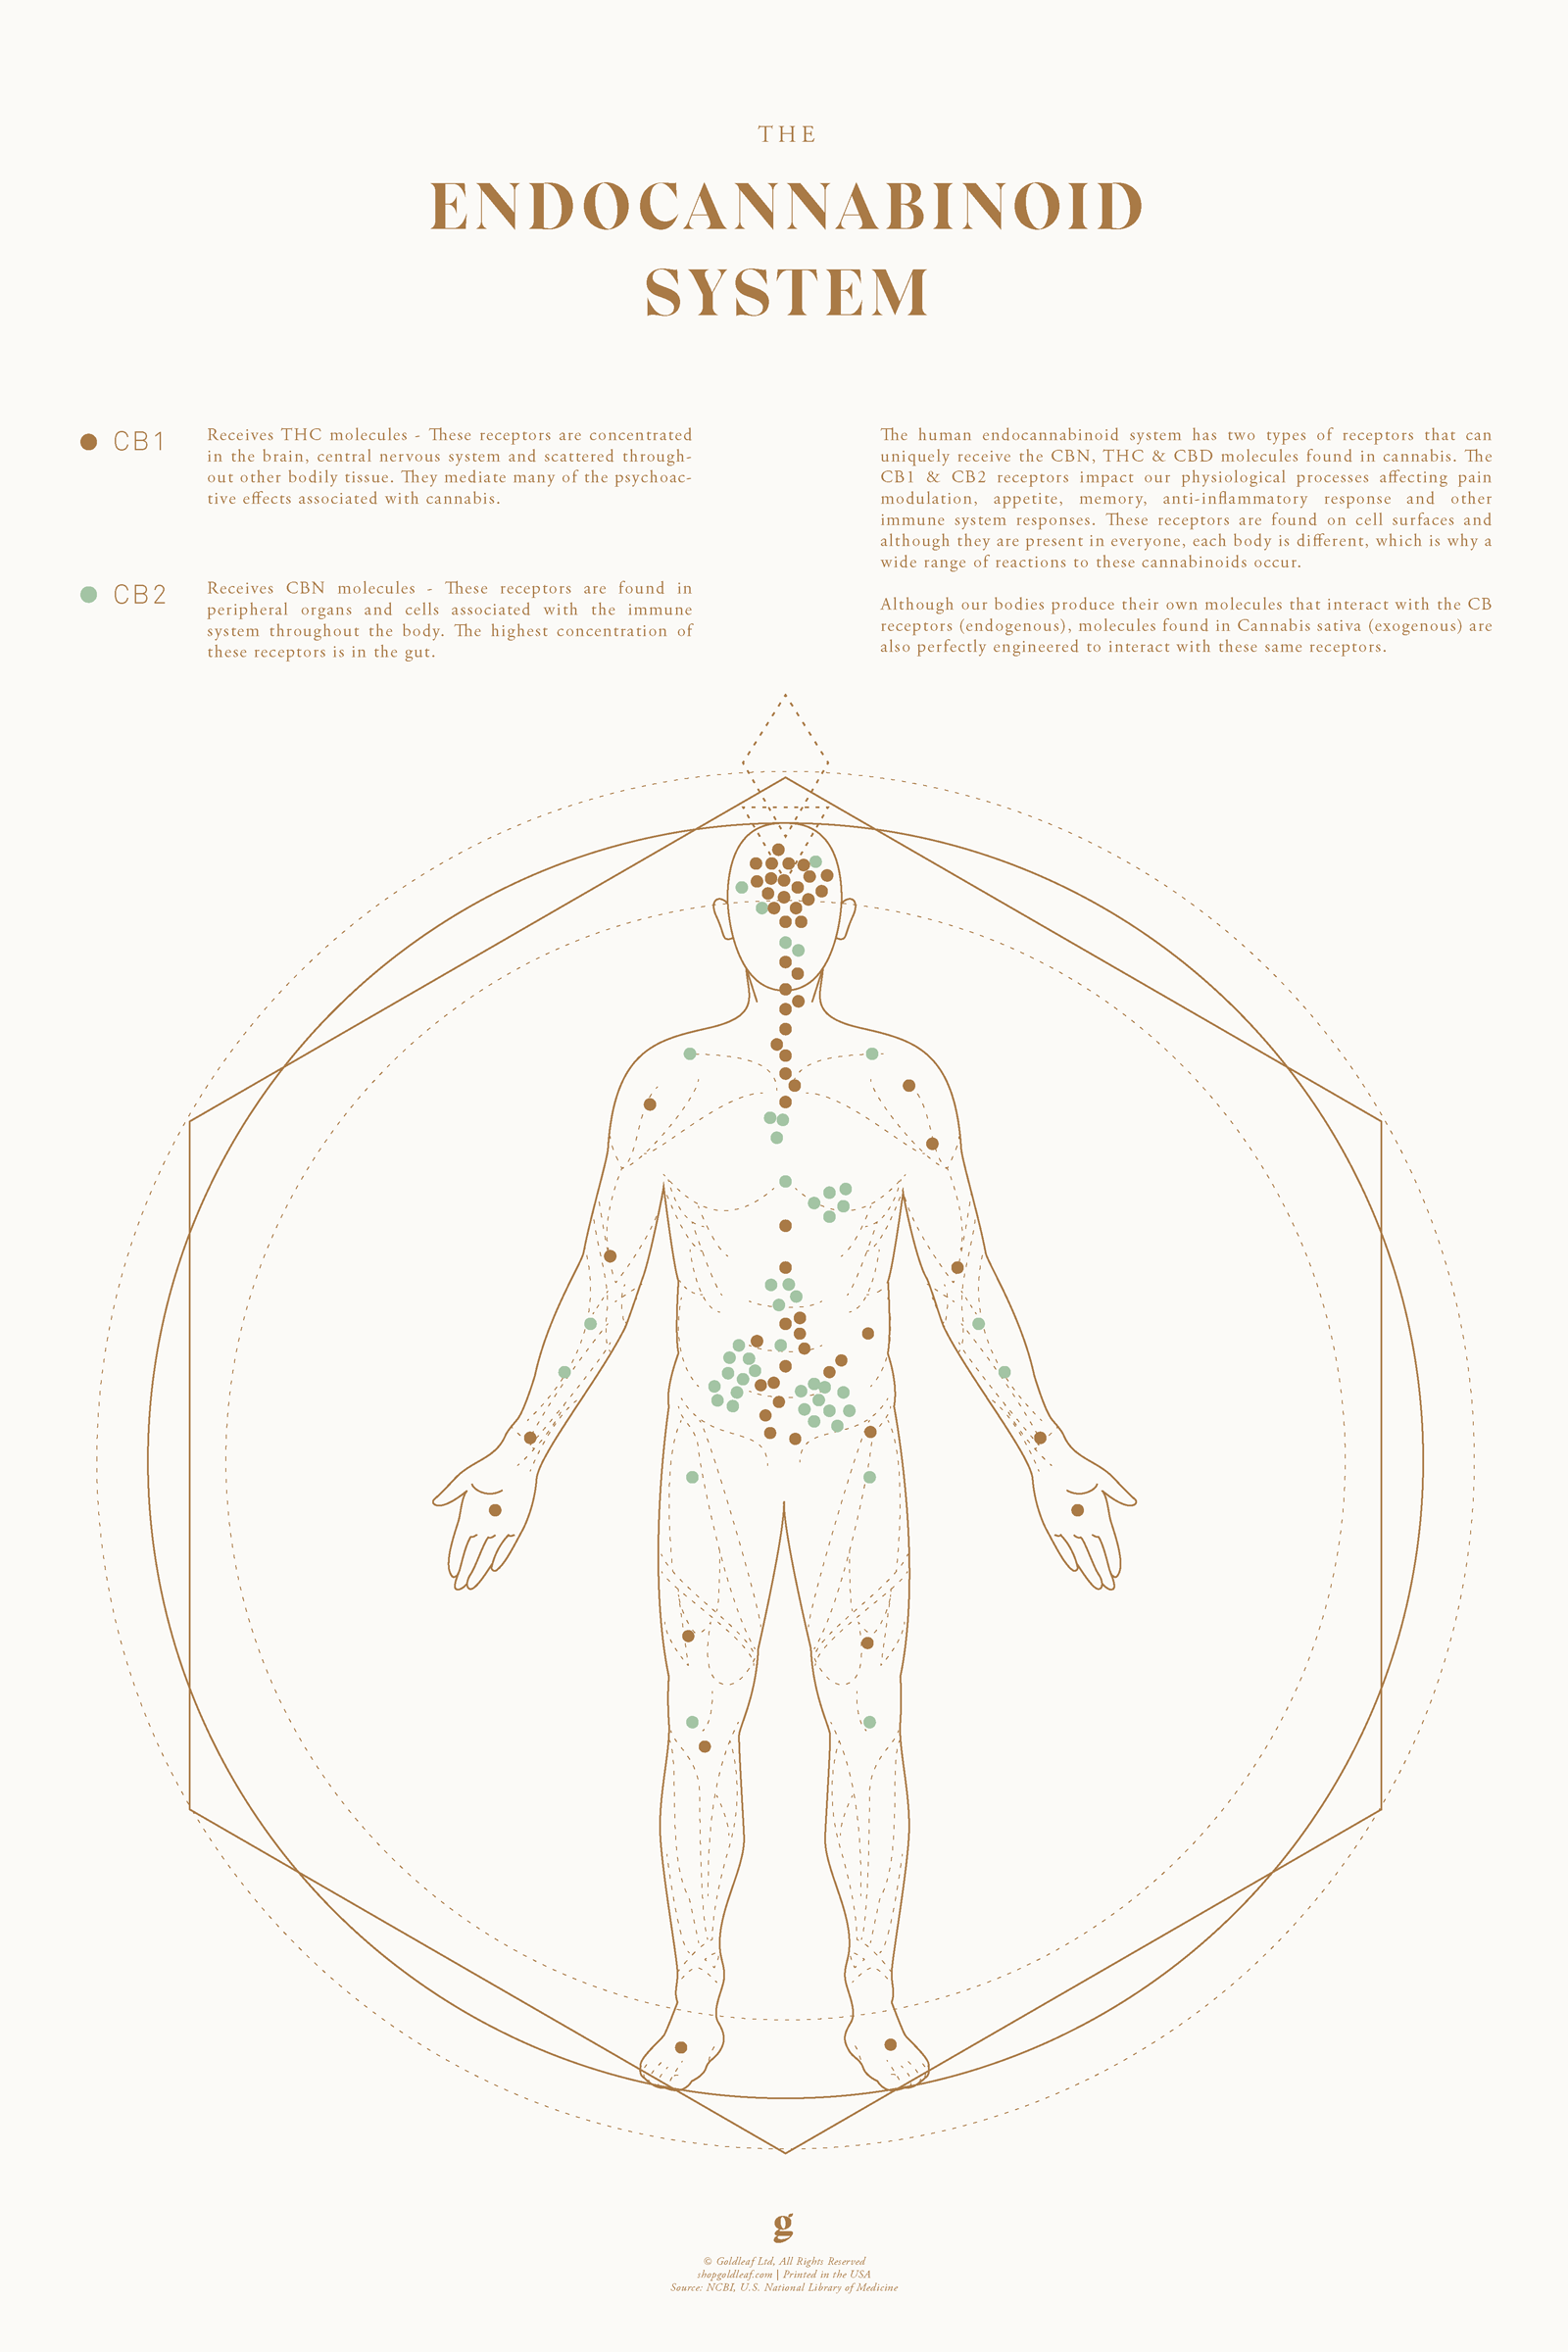 Endocannabinoid System Body Chart by Goldleaf